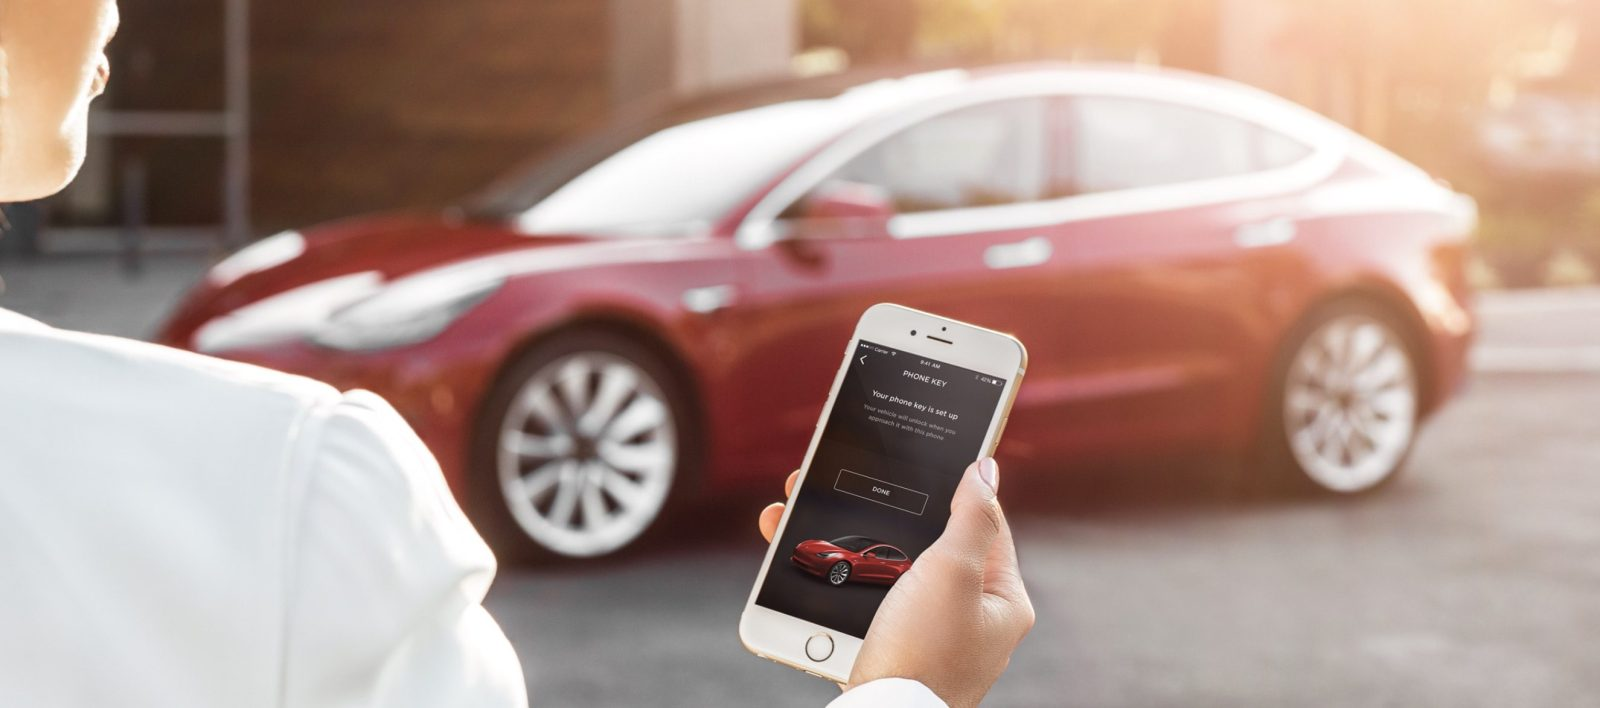 photo of Tesla gives security tips to owners as break-in concerns grow image